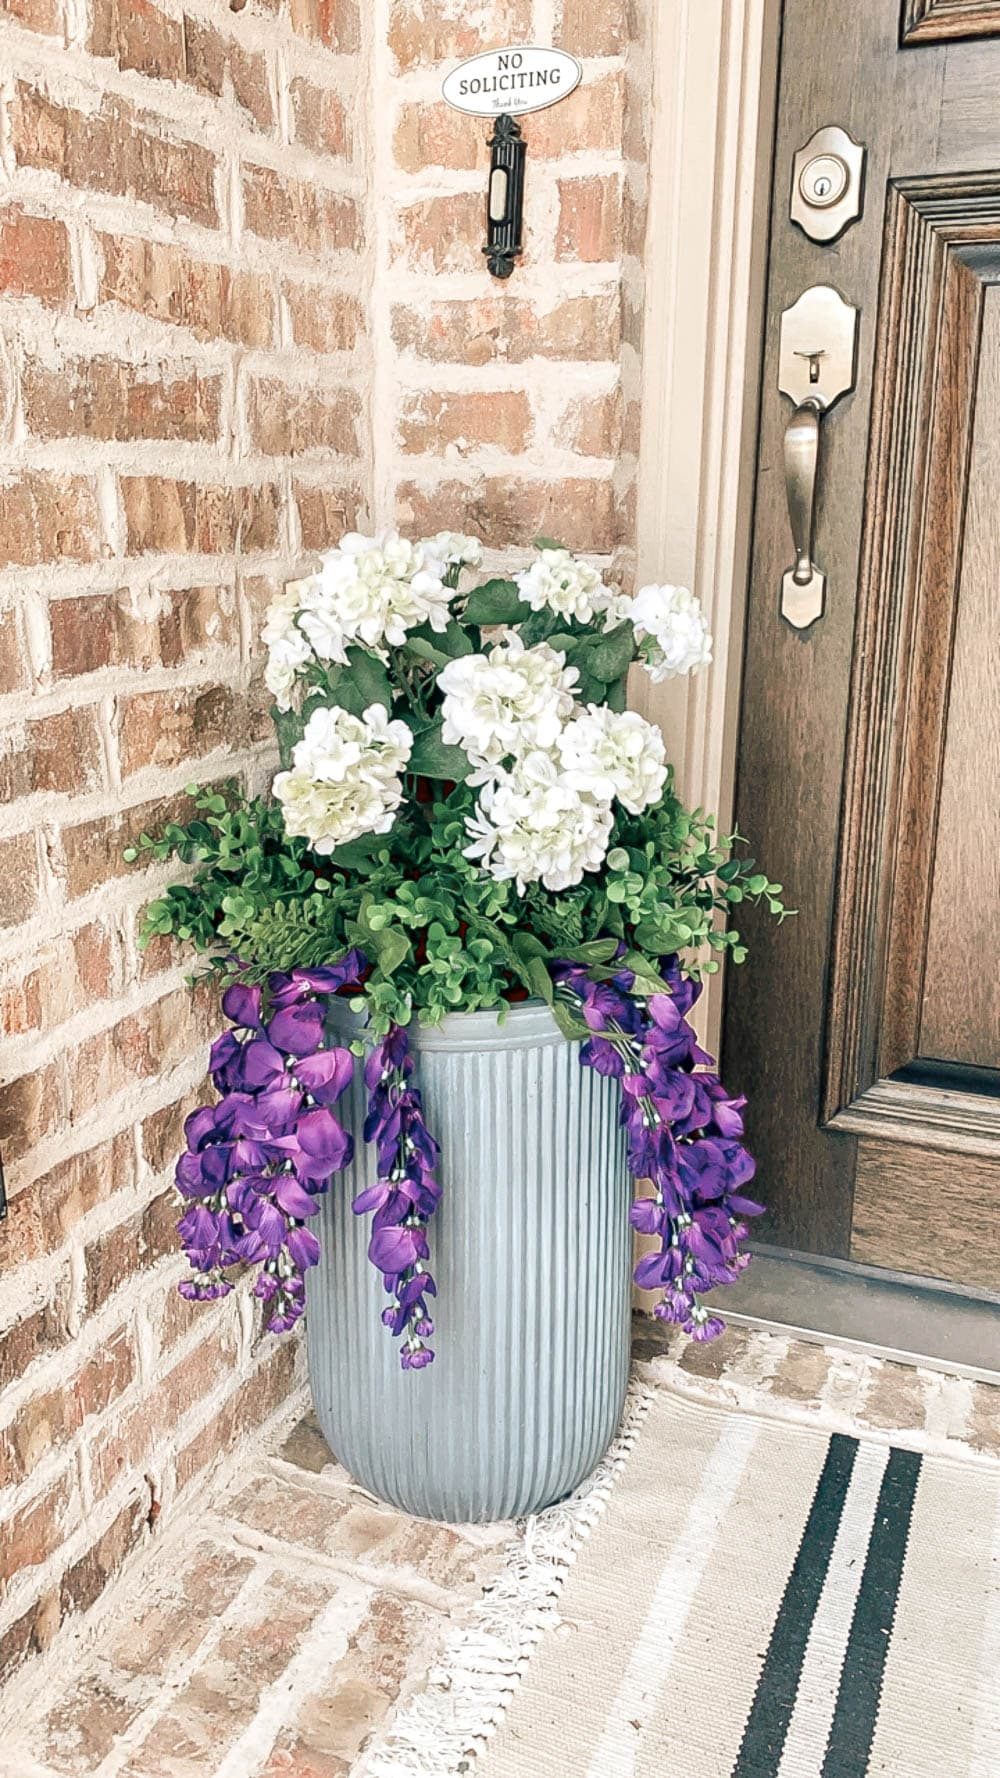 Outdoor planter on front porch filled with faux UV protected faux flowers. #outdoor #planterideas #planters #ABlissfulNest